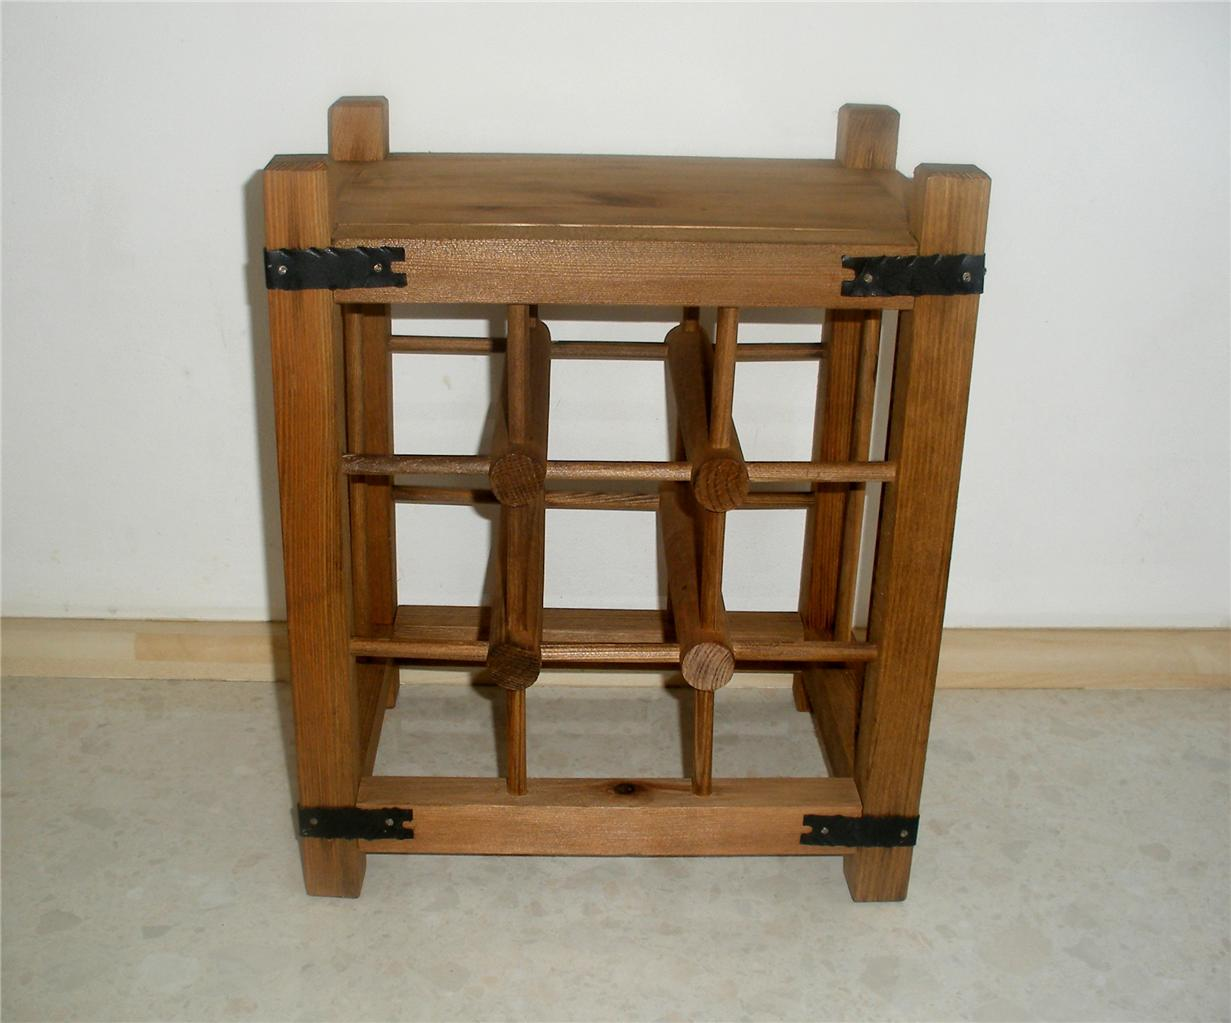 Wooden Wine Rack 9 Bottles Antique Pine Or Walnut Stained